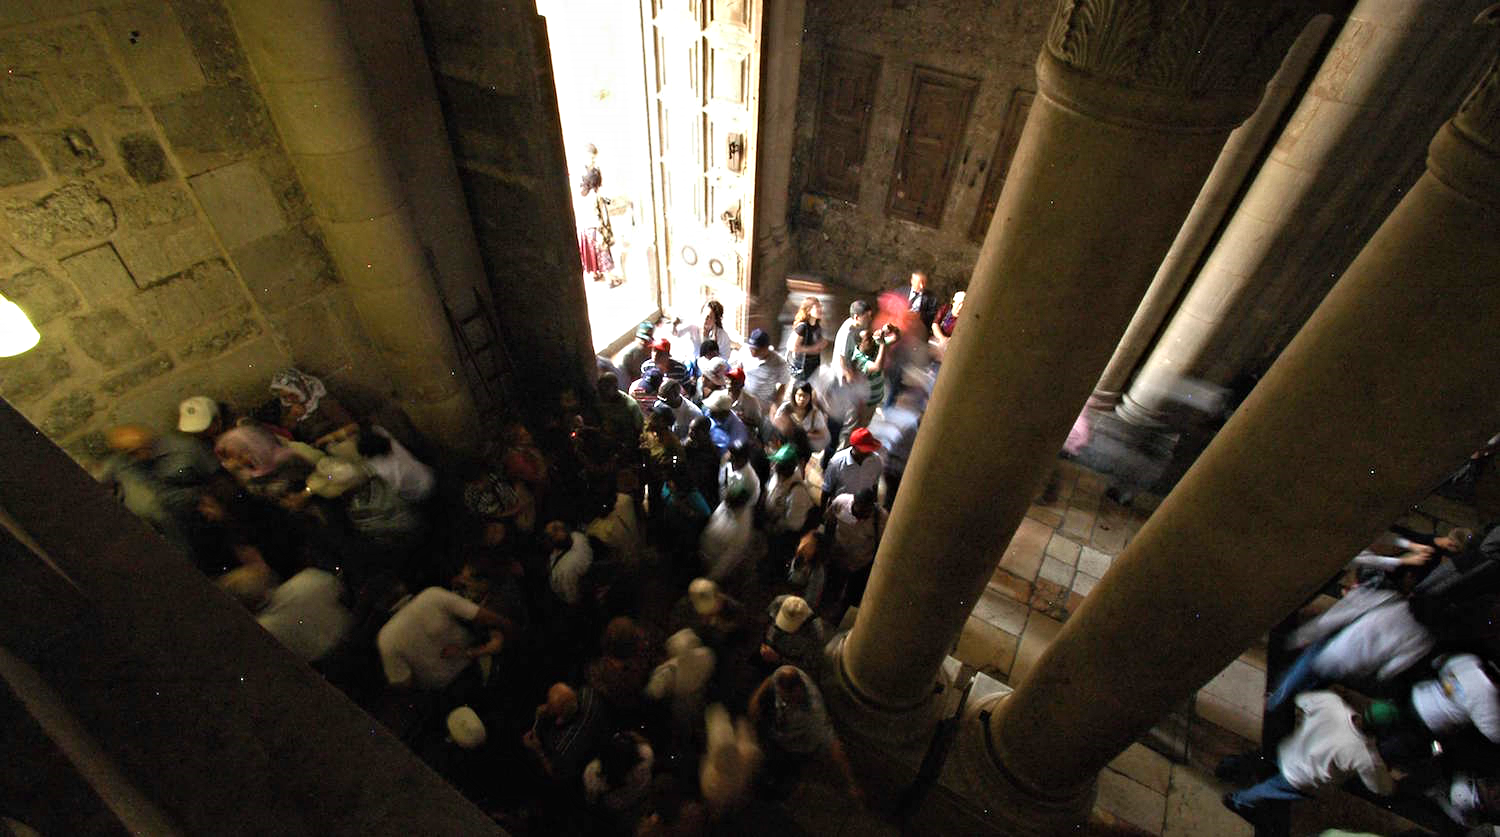 Crowds gather at the entryway to the Church of the Holy Sepulcher.